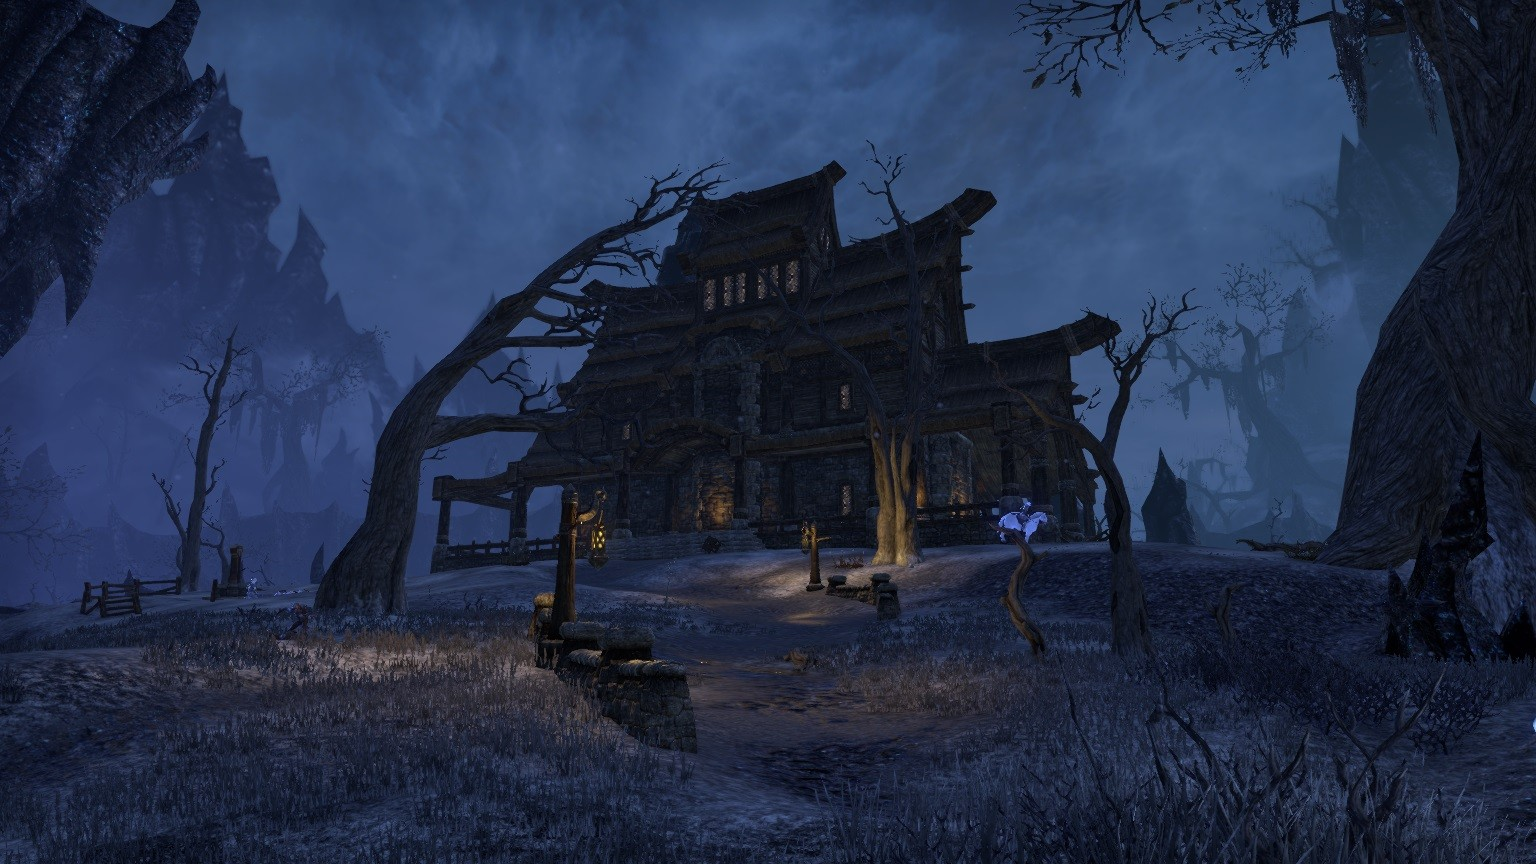 Elder Scrolls Online - This looks like a good inn to spend the night...right?